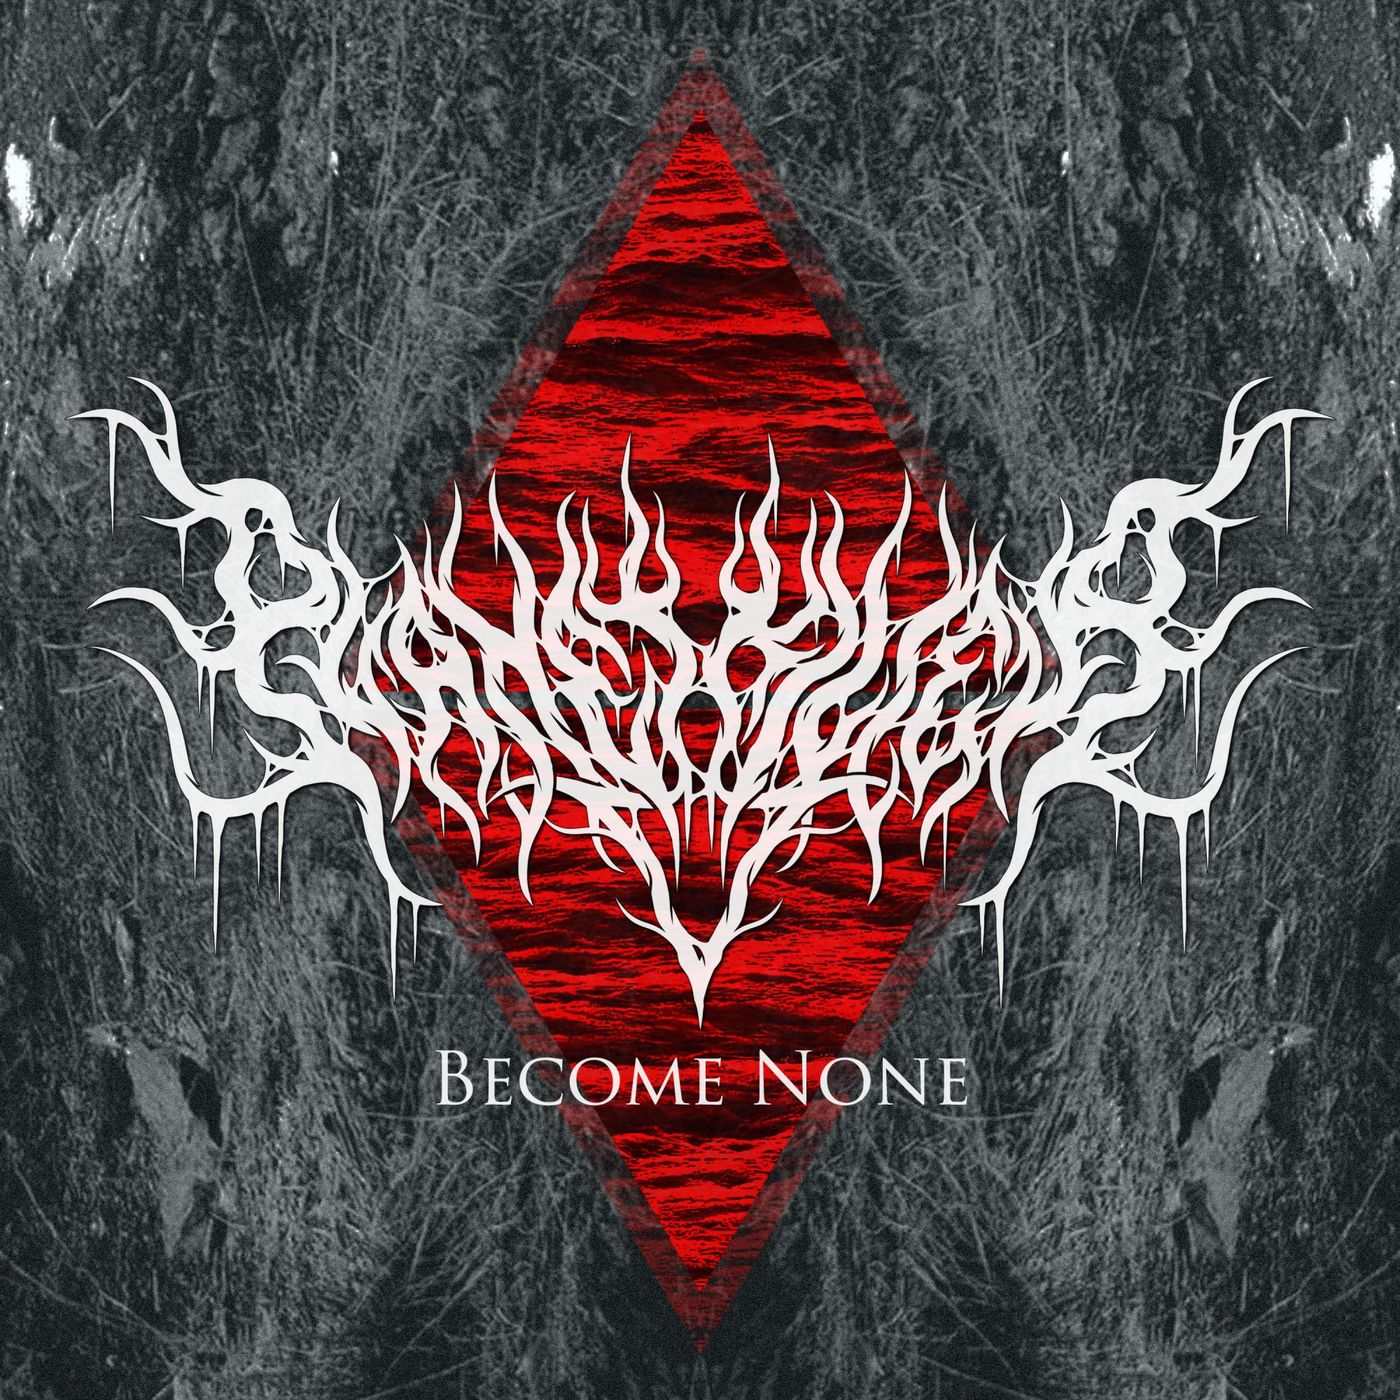 Planetkiller - Become None [single] (2020)